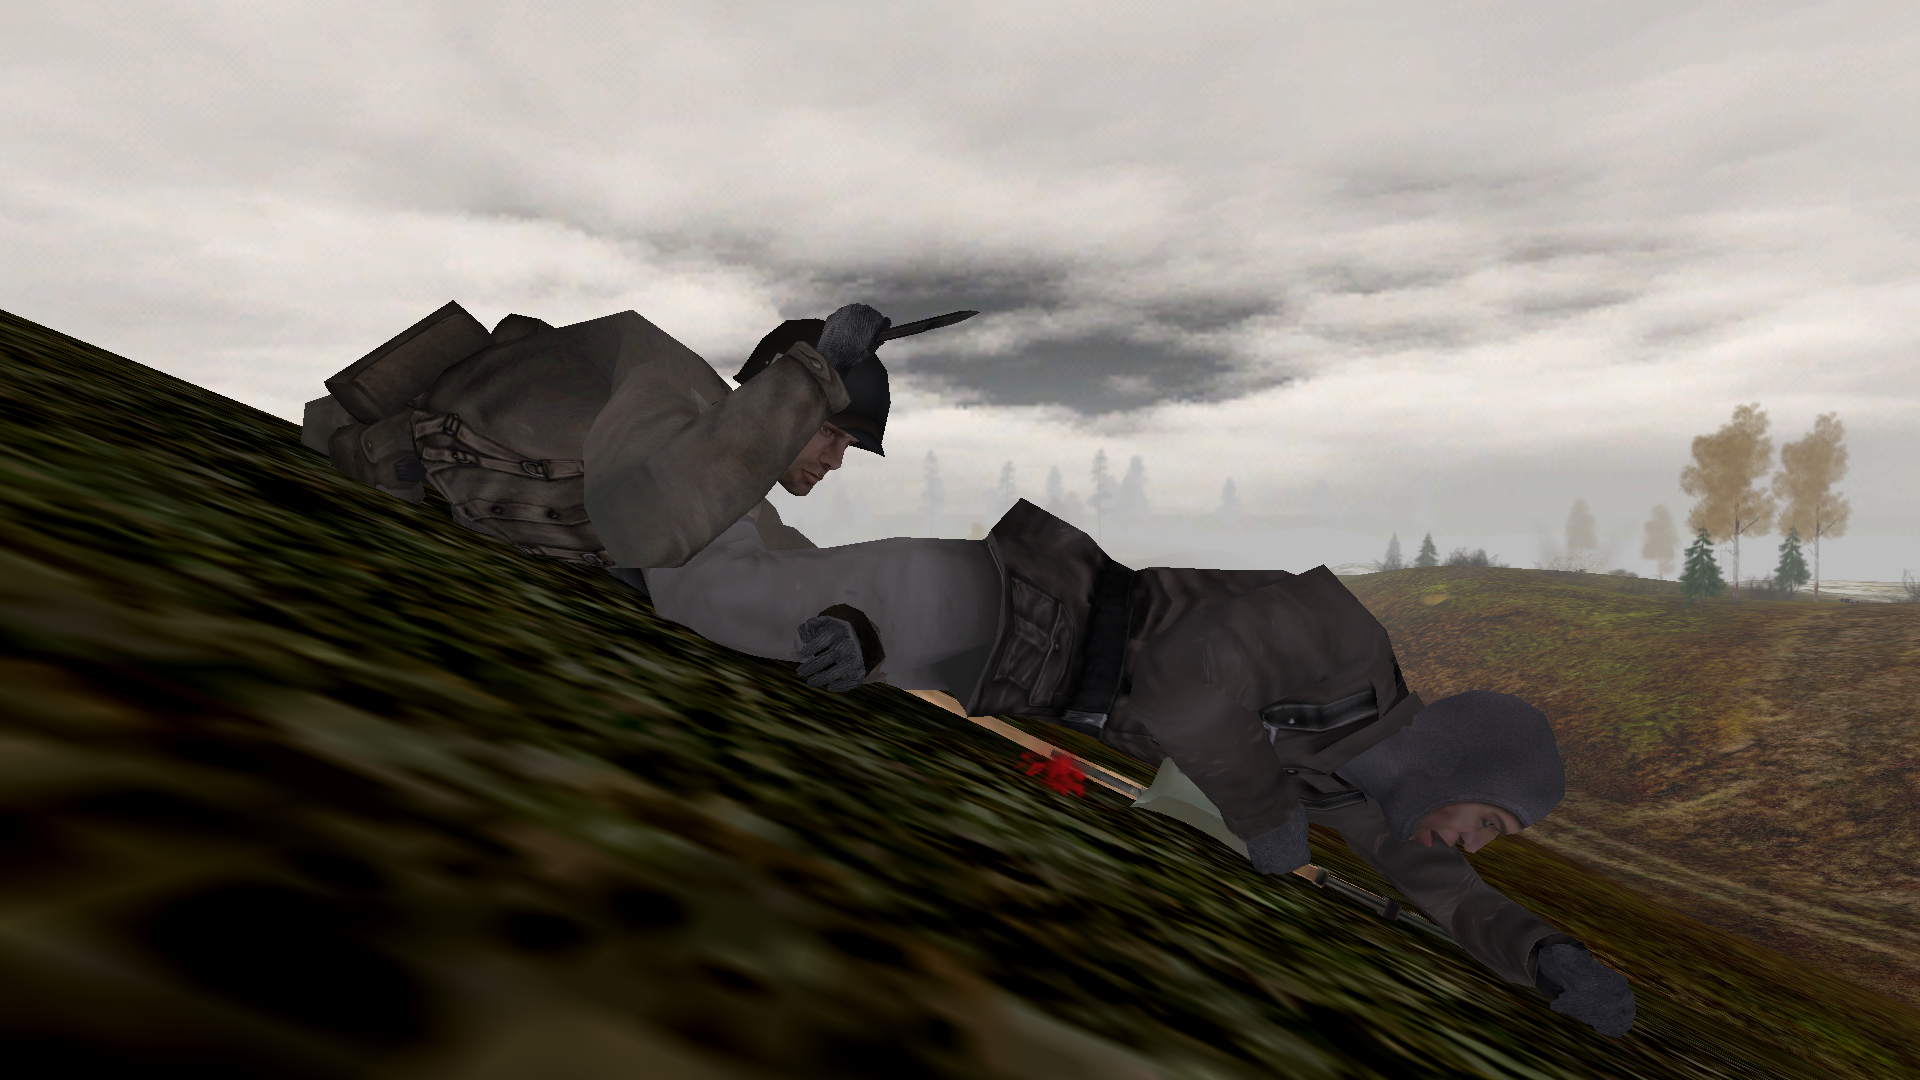 Battlefield 1942 Screenshot 2018 6